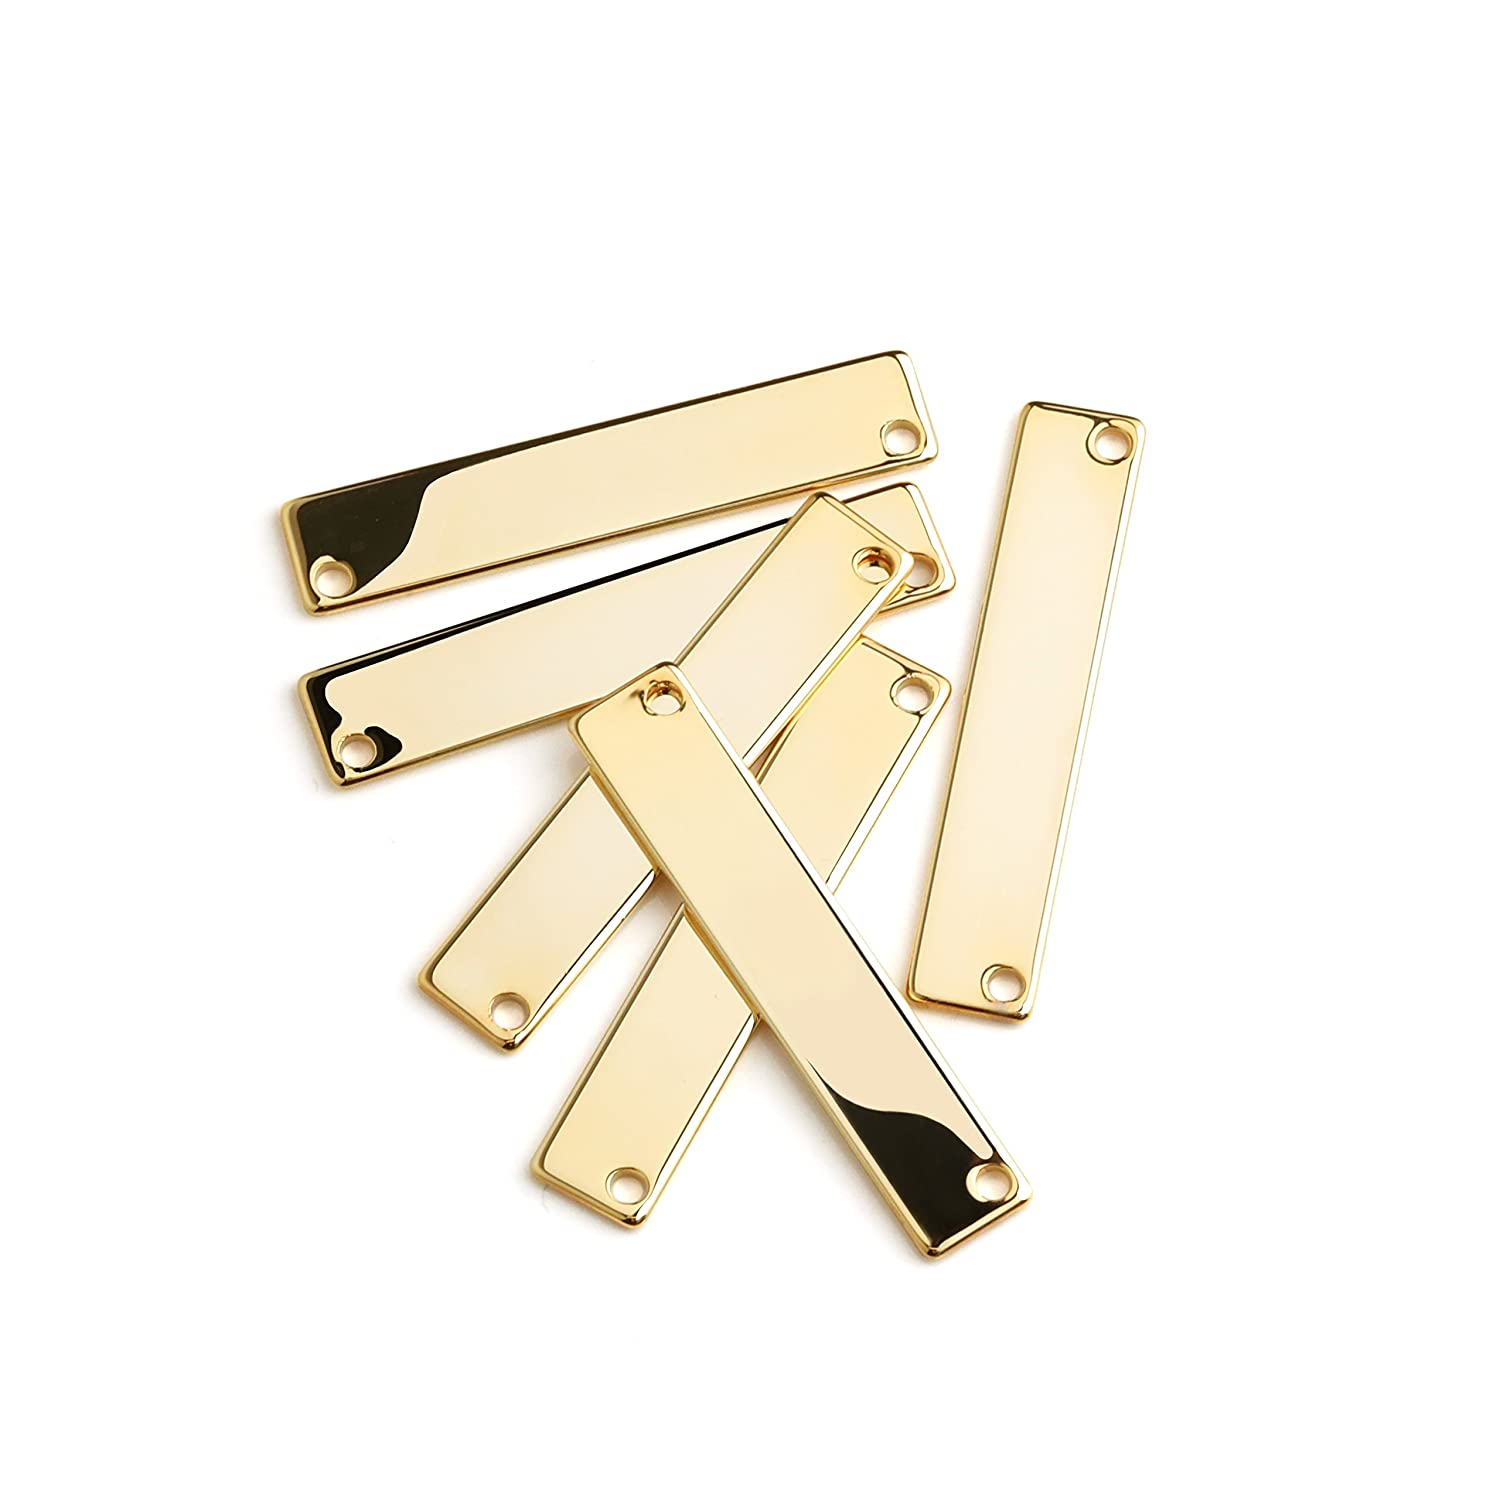 10 Pieces - 16K Gold Plated Stamping Blank Bar Horizontal Pendant Name Plate Jewelry Supply Craft Supplies 1.35 x 0.28 (34.3mm x 7mm) - 10P4 (Gold) Mignon Supply